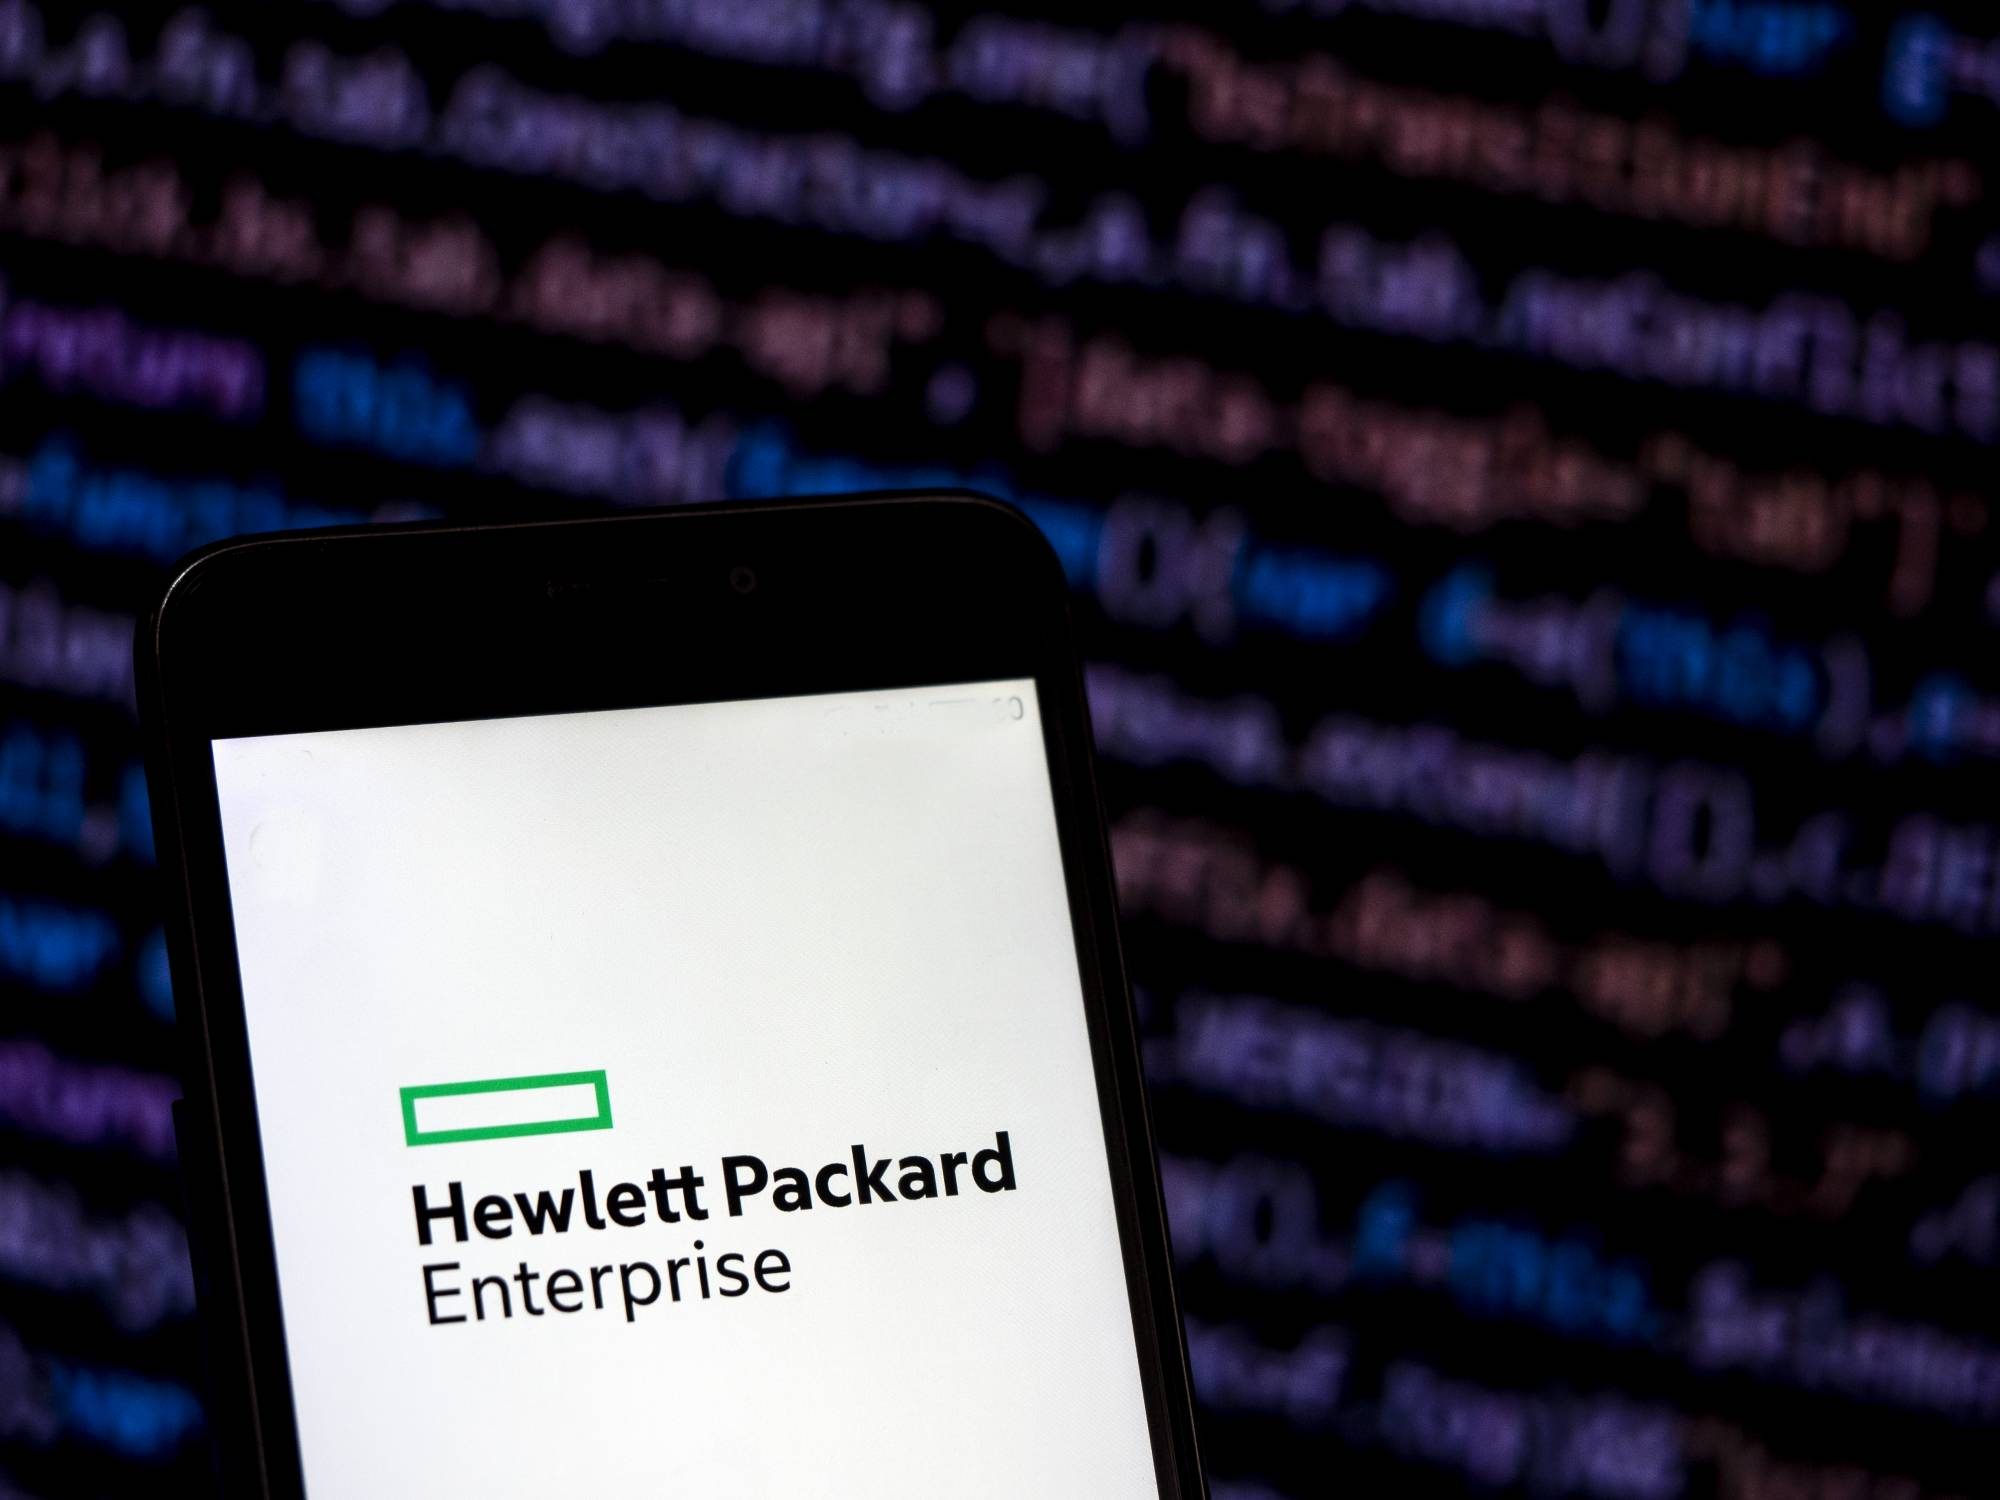 Hewlett Packard Enterprise wants to go big on subscriptions and software.